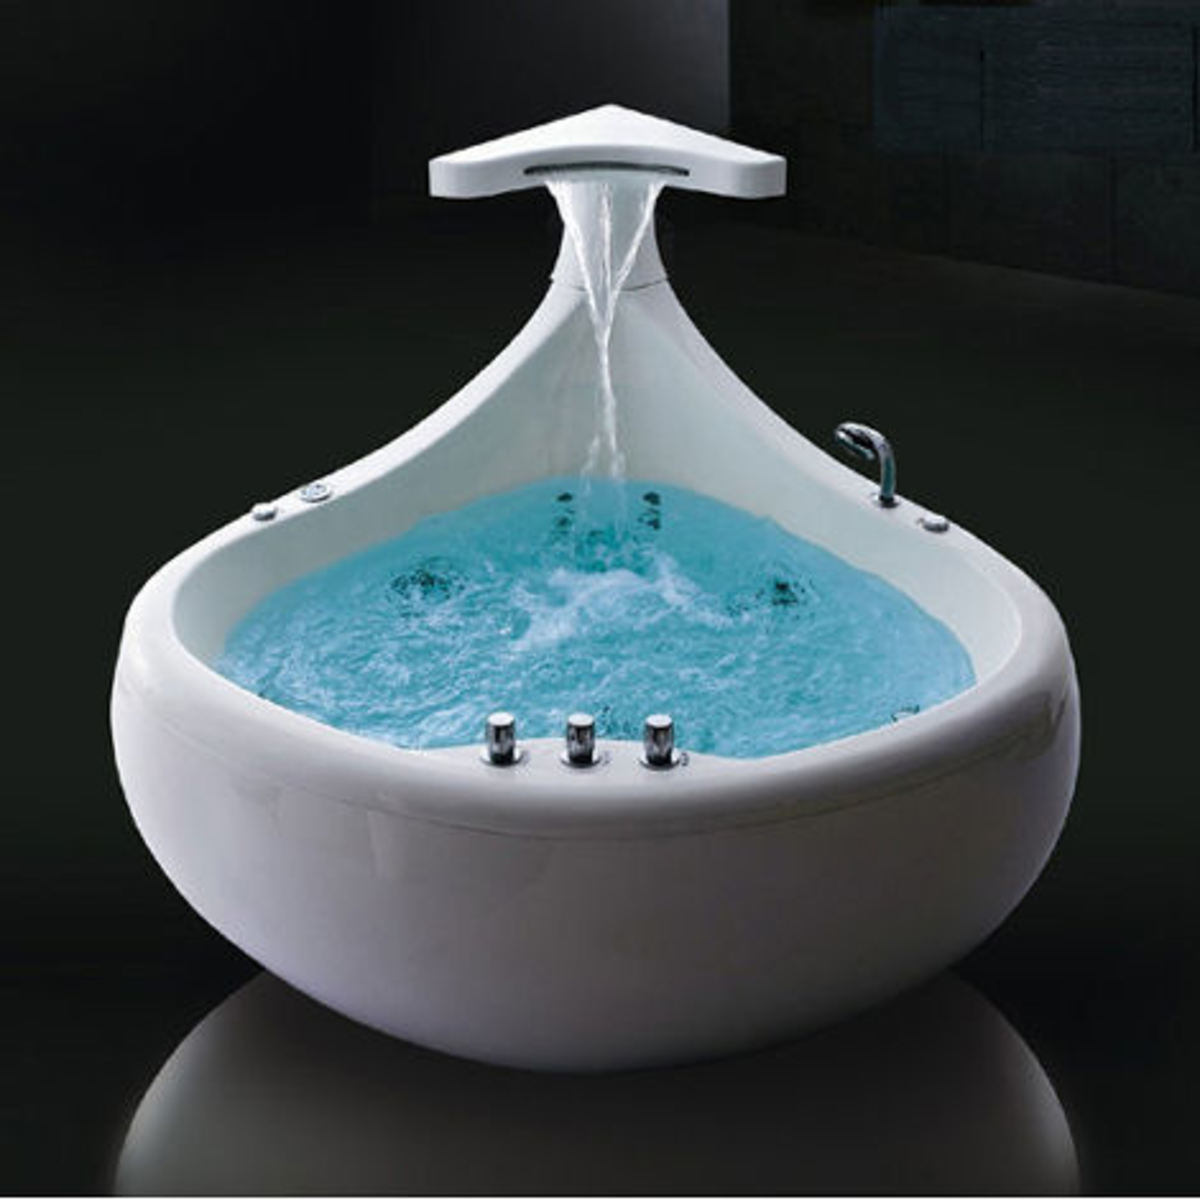 Latest Trends: Small Bathtubs, with Pics and Videos | HubPages